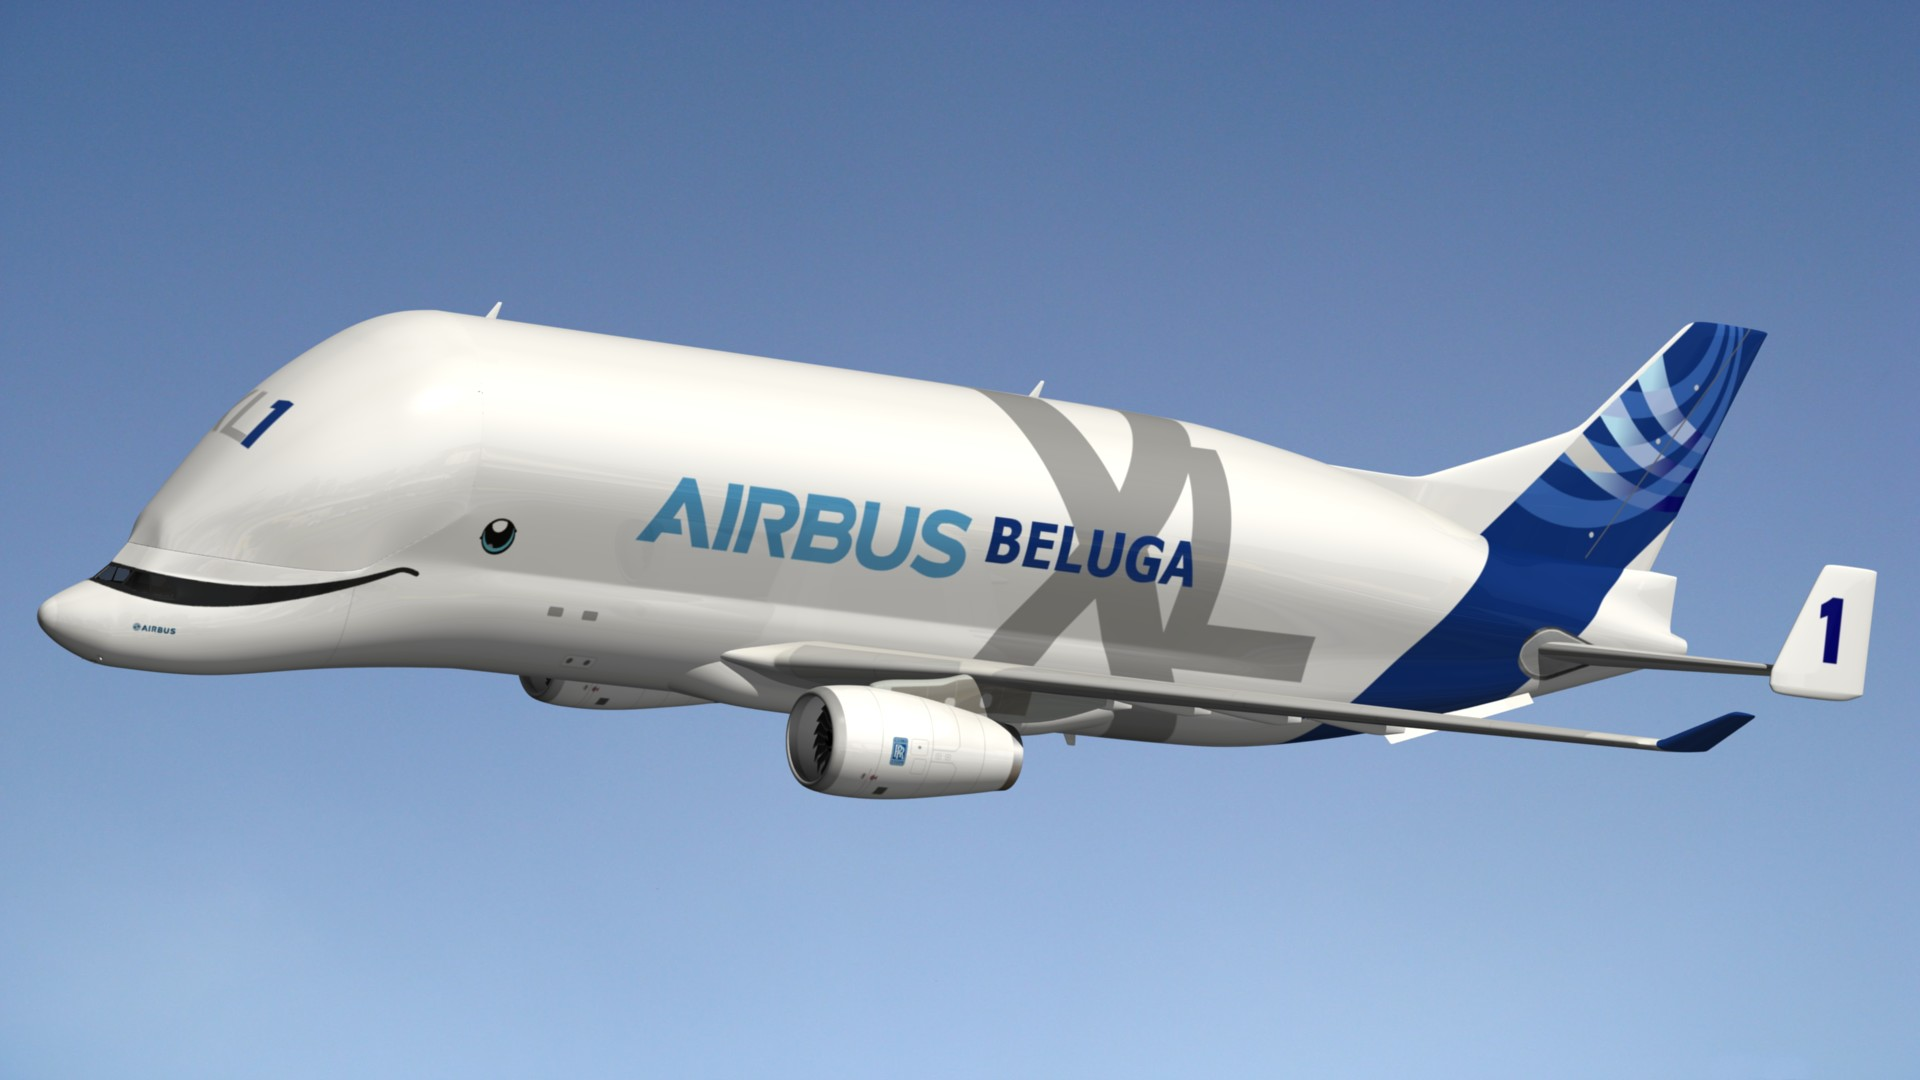 BelugaXL is readied for electrical power-up as integration of the no. 1 giant airlifter continues